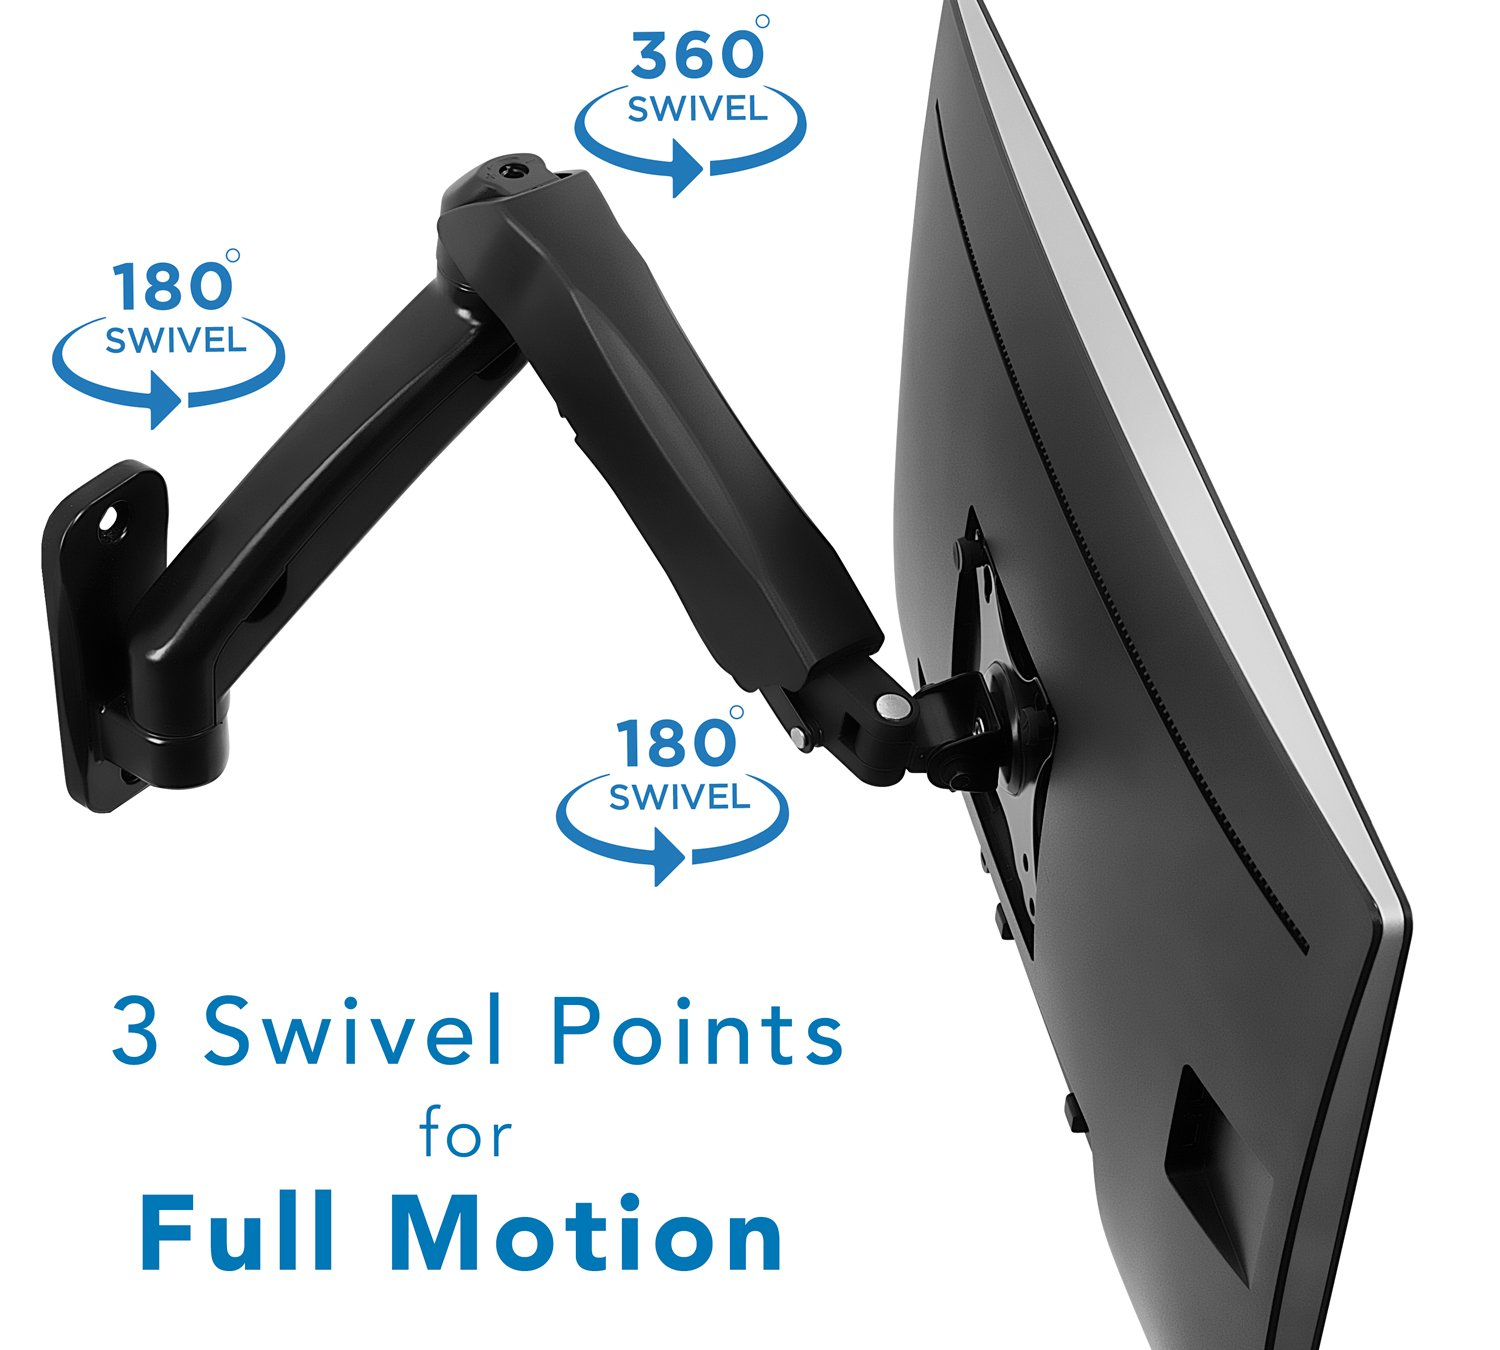 Monitor Wall Mount Articulating Adjustable Gas Spring Arm For 17 To 32 Inch